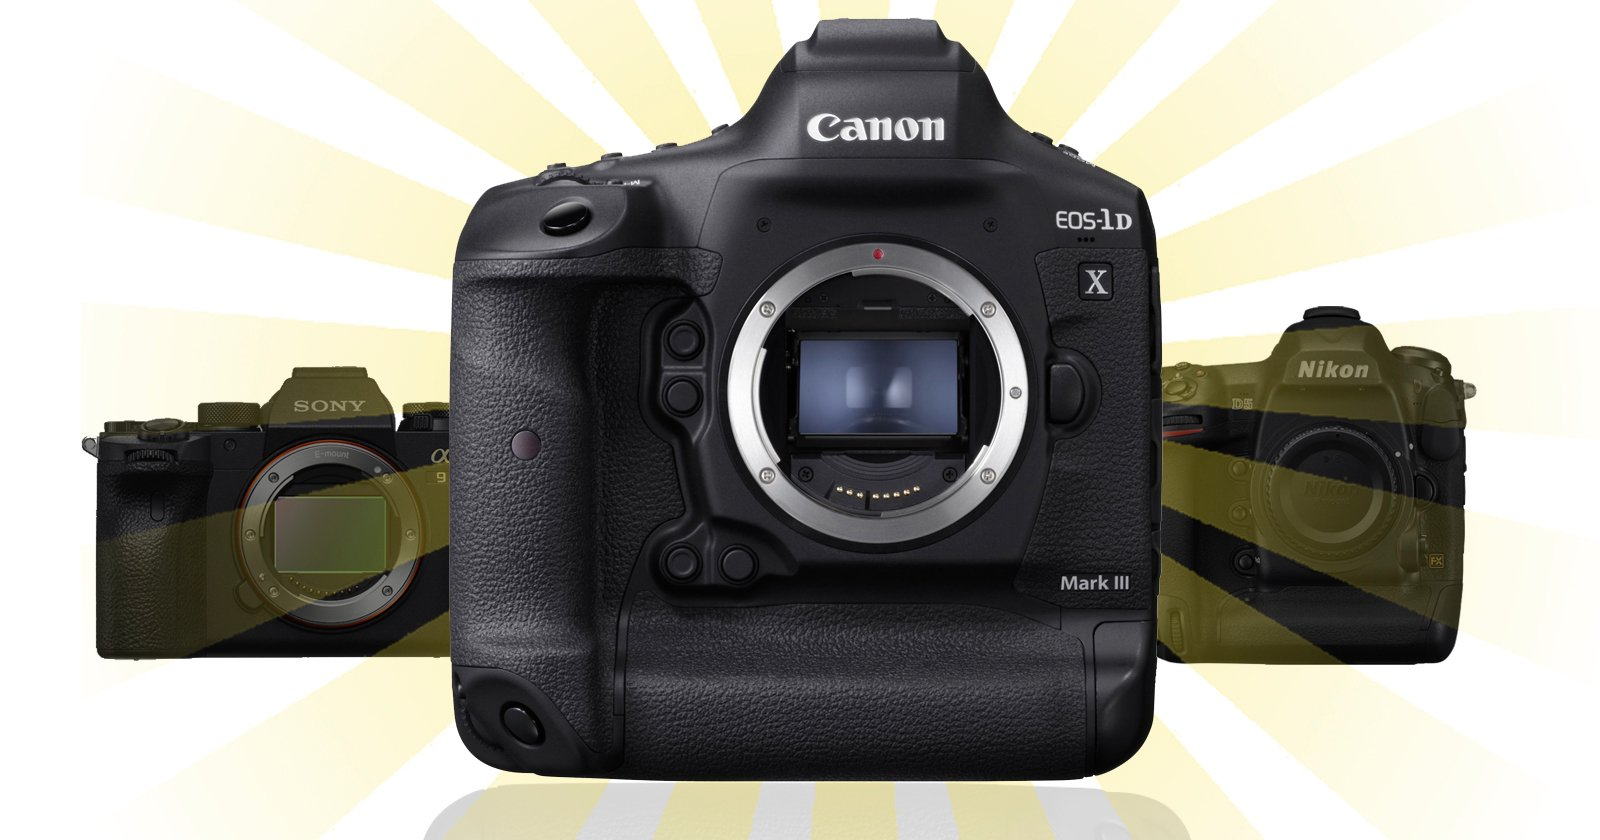 The Canon 1DX Mark III is Shaping Up to be a Killer Mirrorless Camera